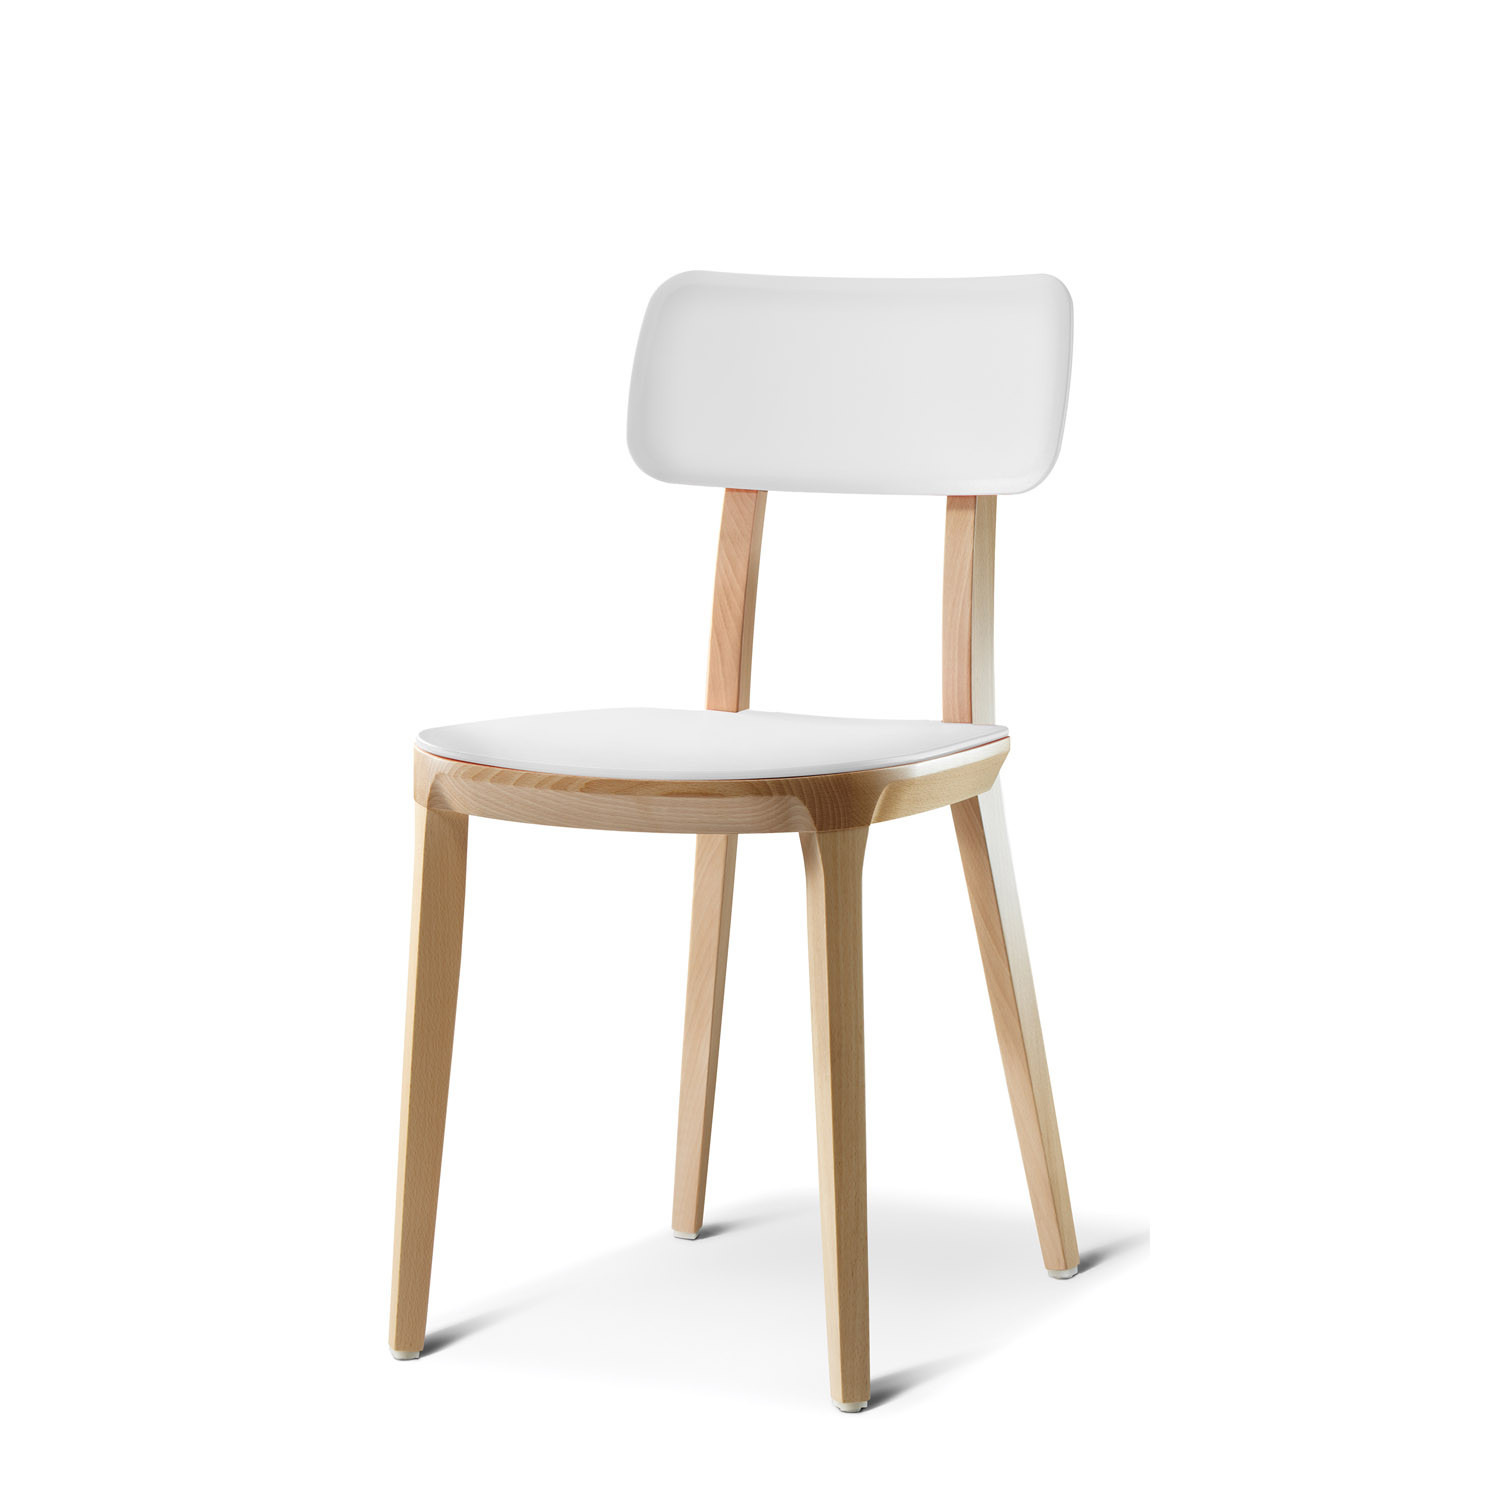 white bistro chairs medical office waiting room retro breakout chair mrt1 solid wood cafe apres